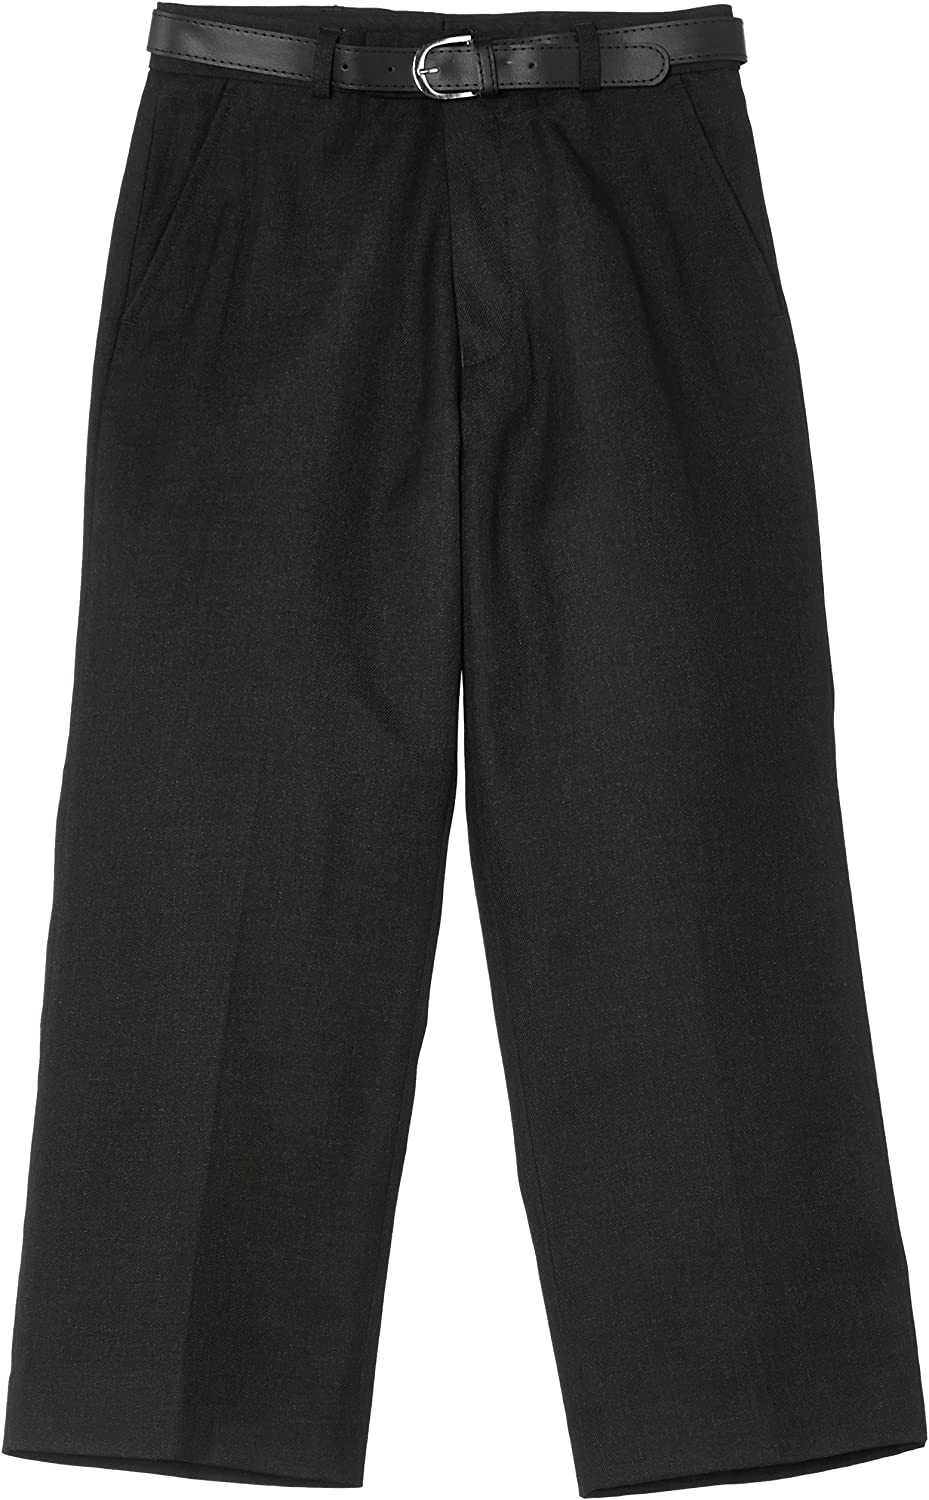 Manufacturer Size: 50 Black Trutex Boys Sturdy Fit Trousers 16 Years